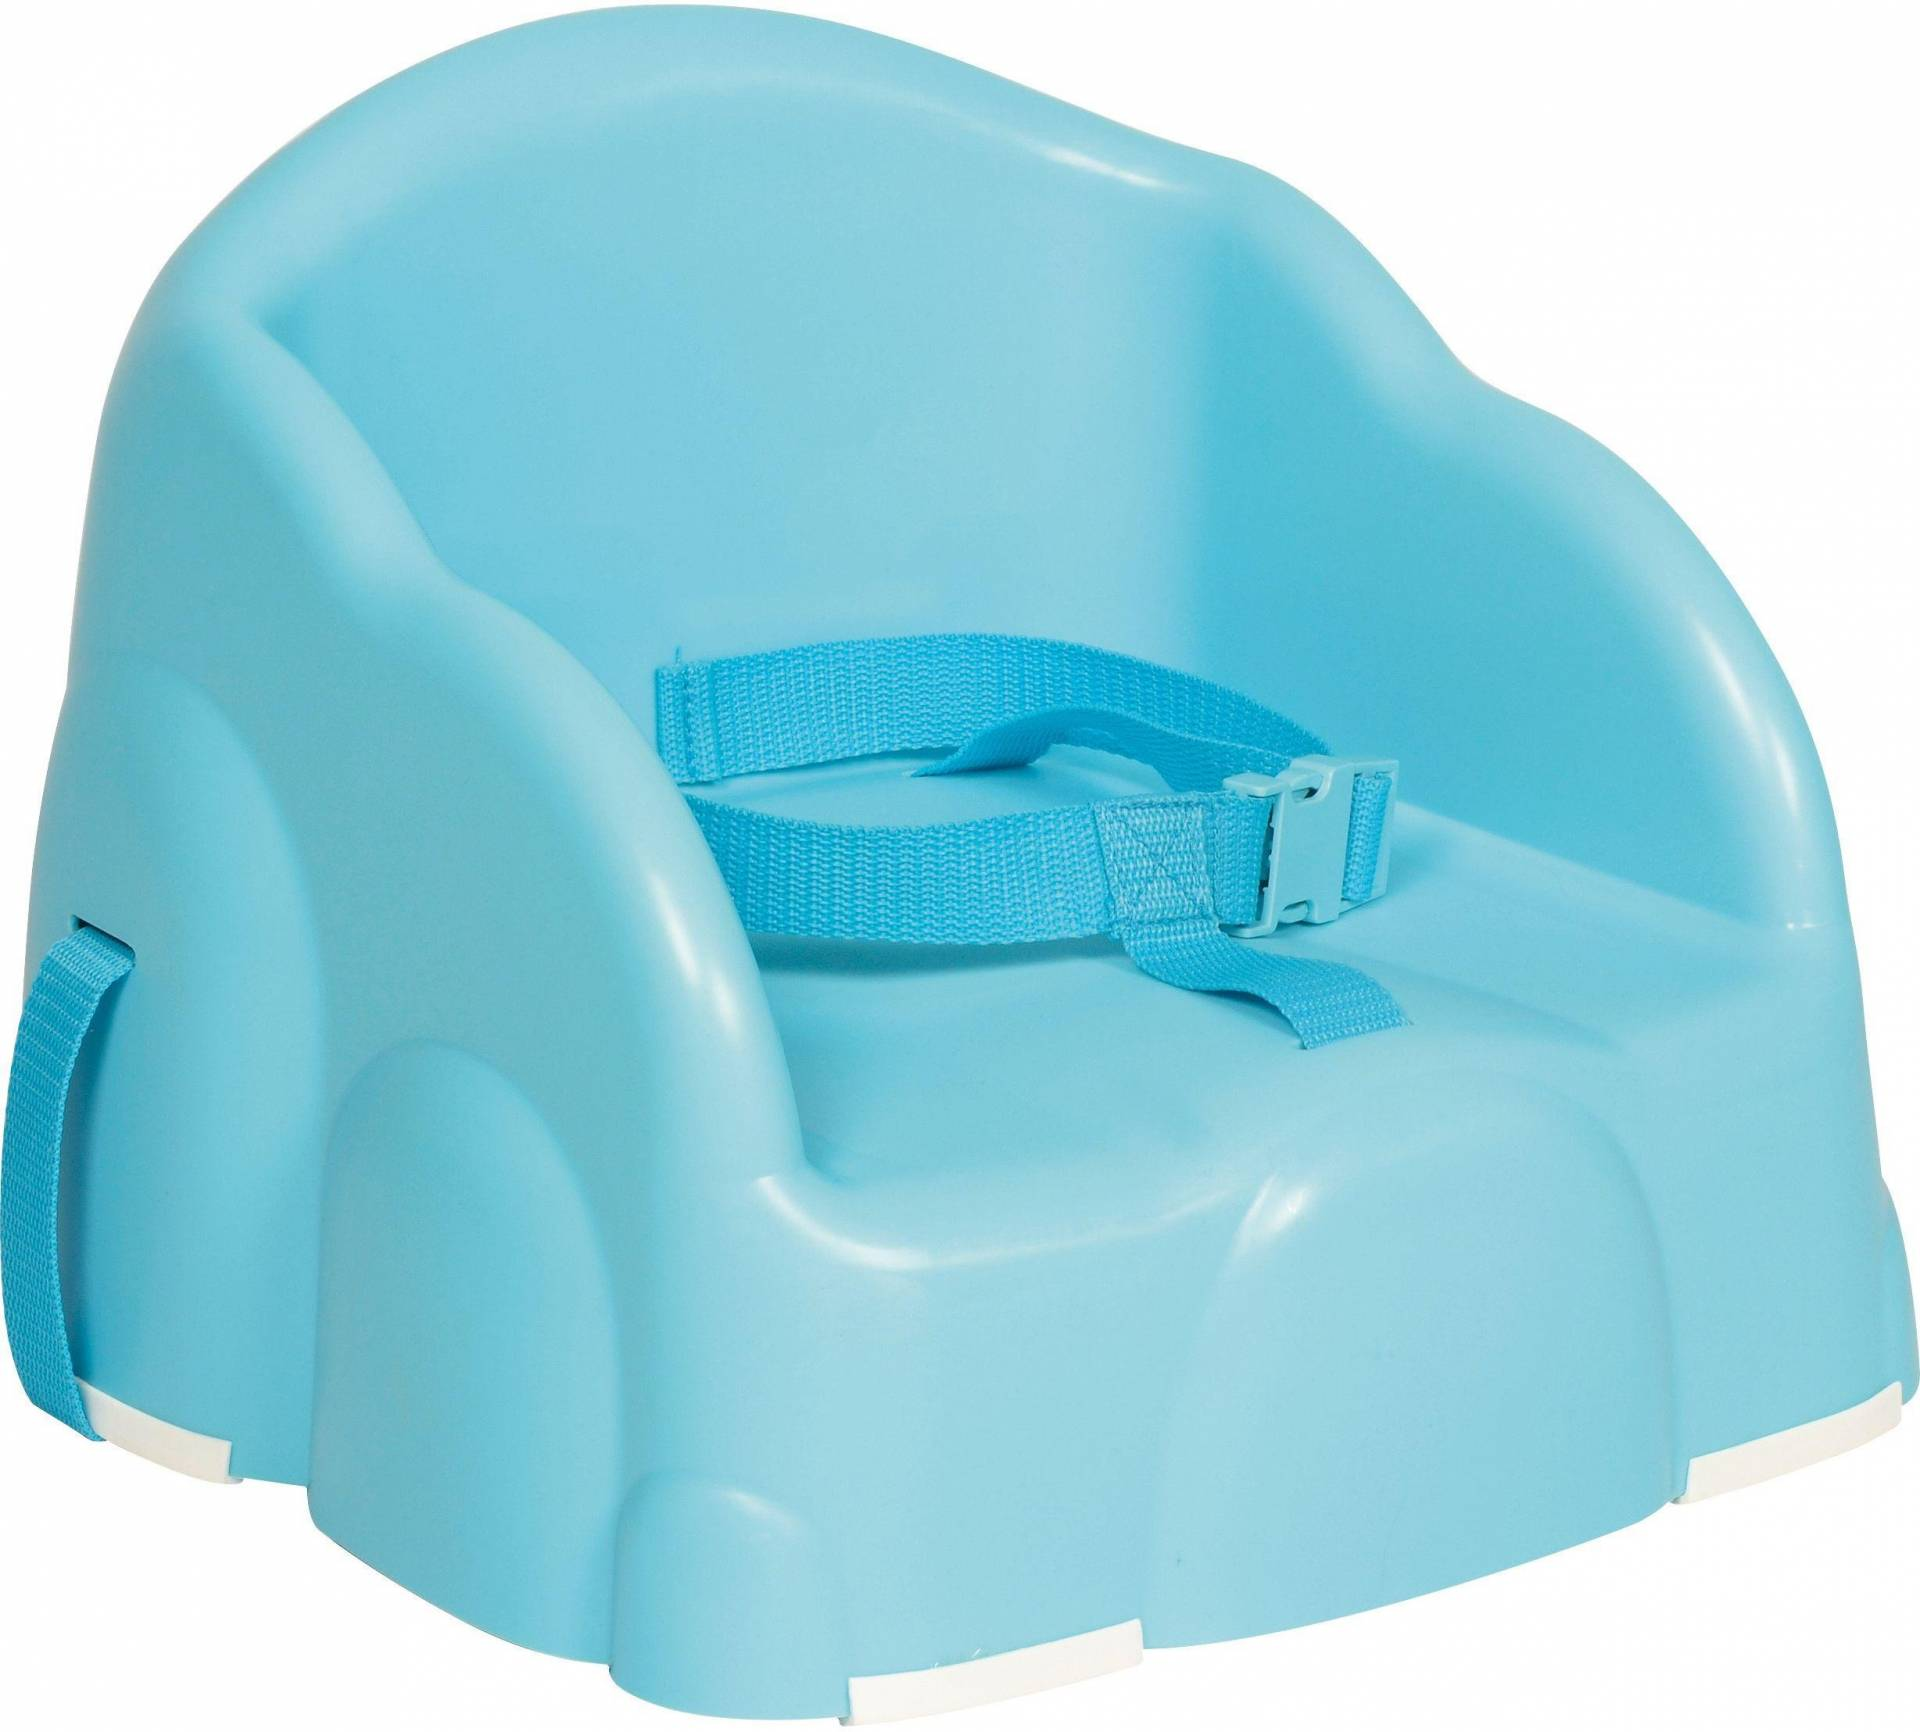 Safety 1st - Blue Basic - Booster Seat from Safety 1st